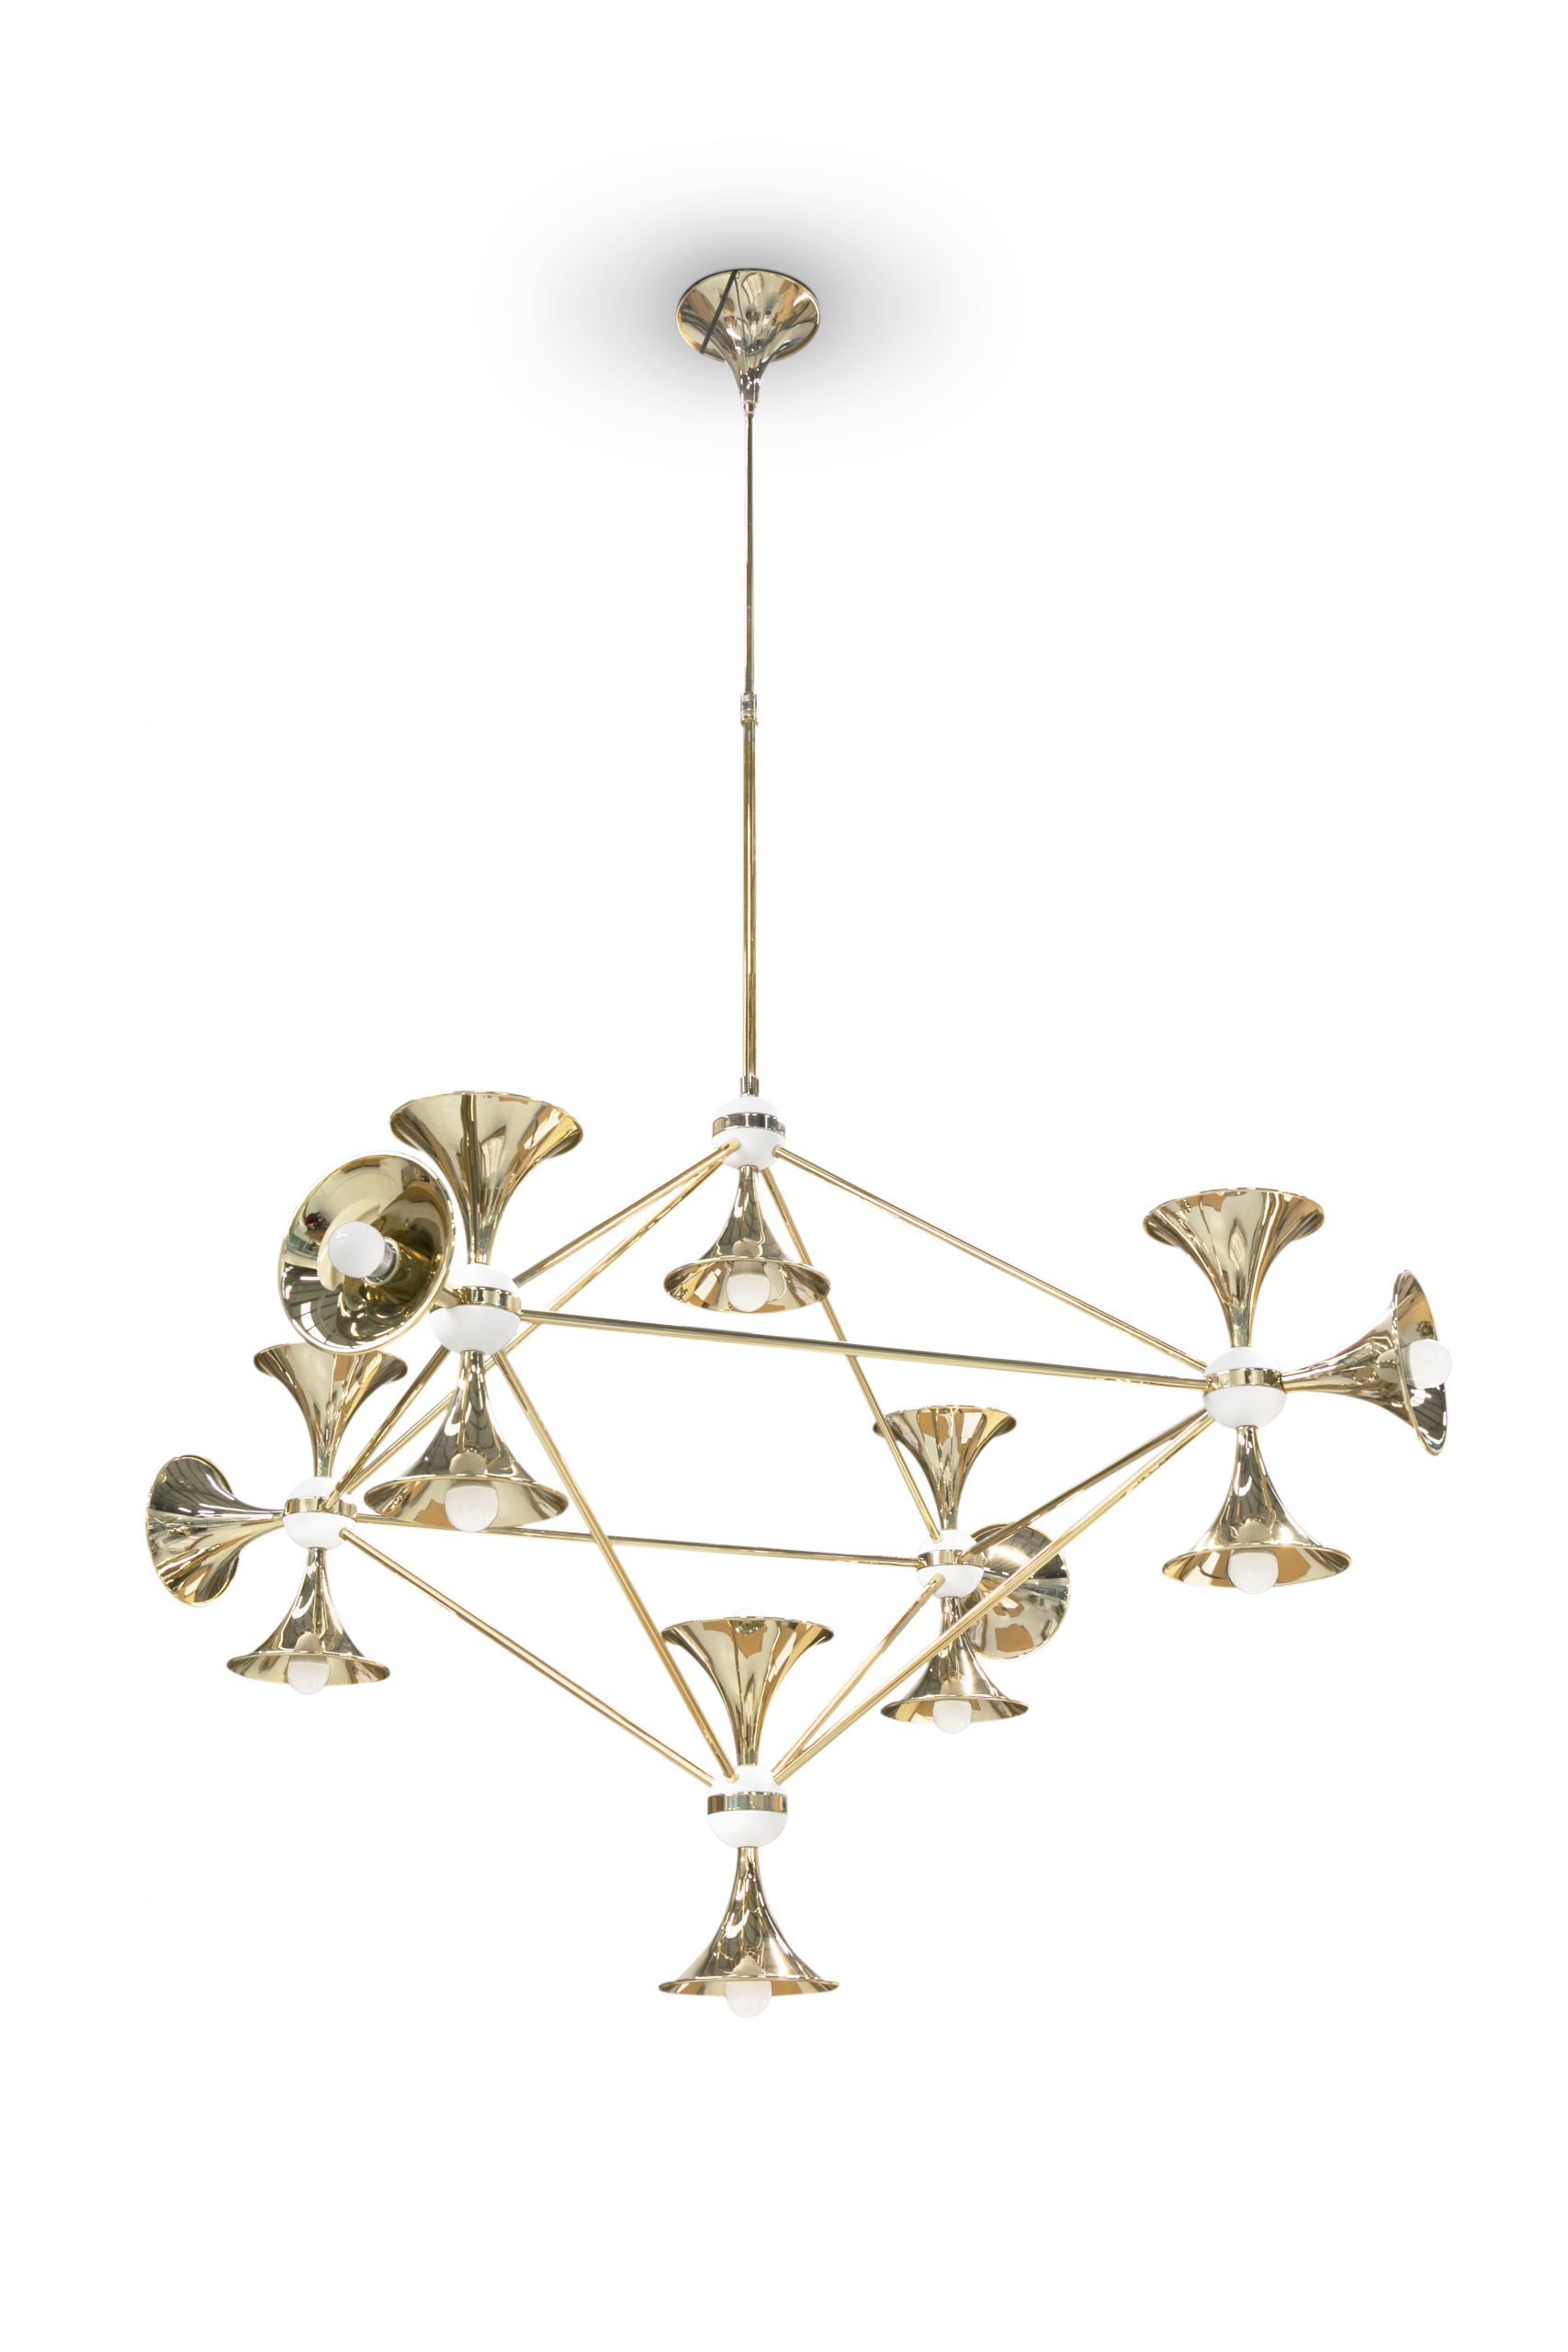 The New Mid Century Suspension Lamp You'll See Eveywhere This Year! mid century suspension lamp The New Mid Century Suspension Lamp You'll See Eveywhere This Year! Botti Diamond scaled